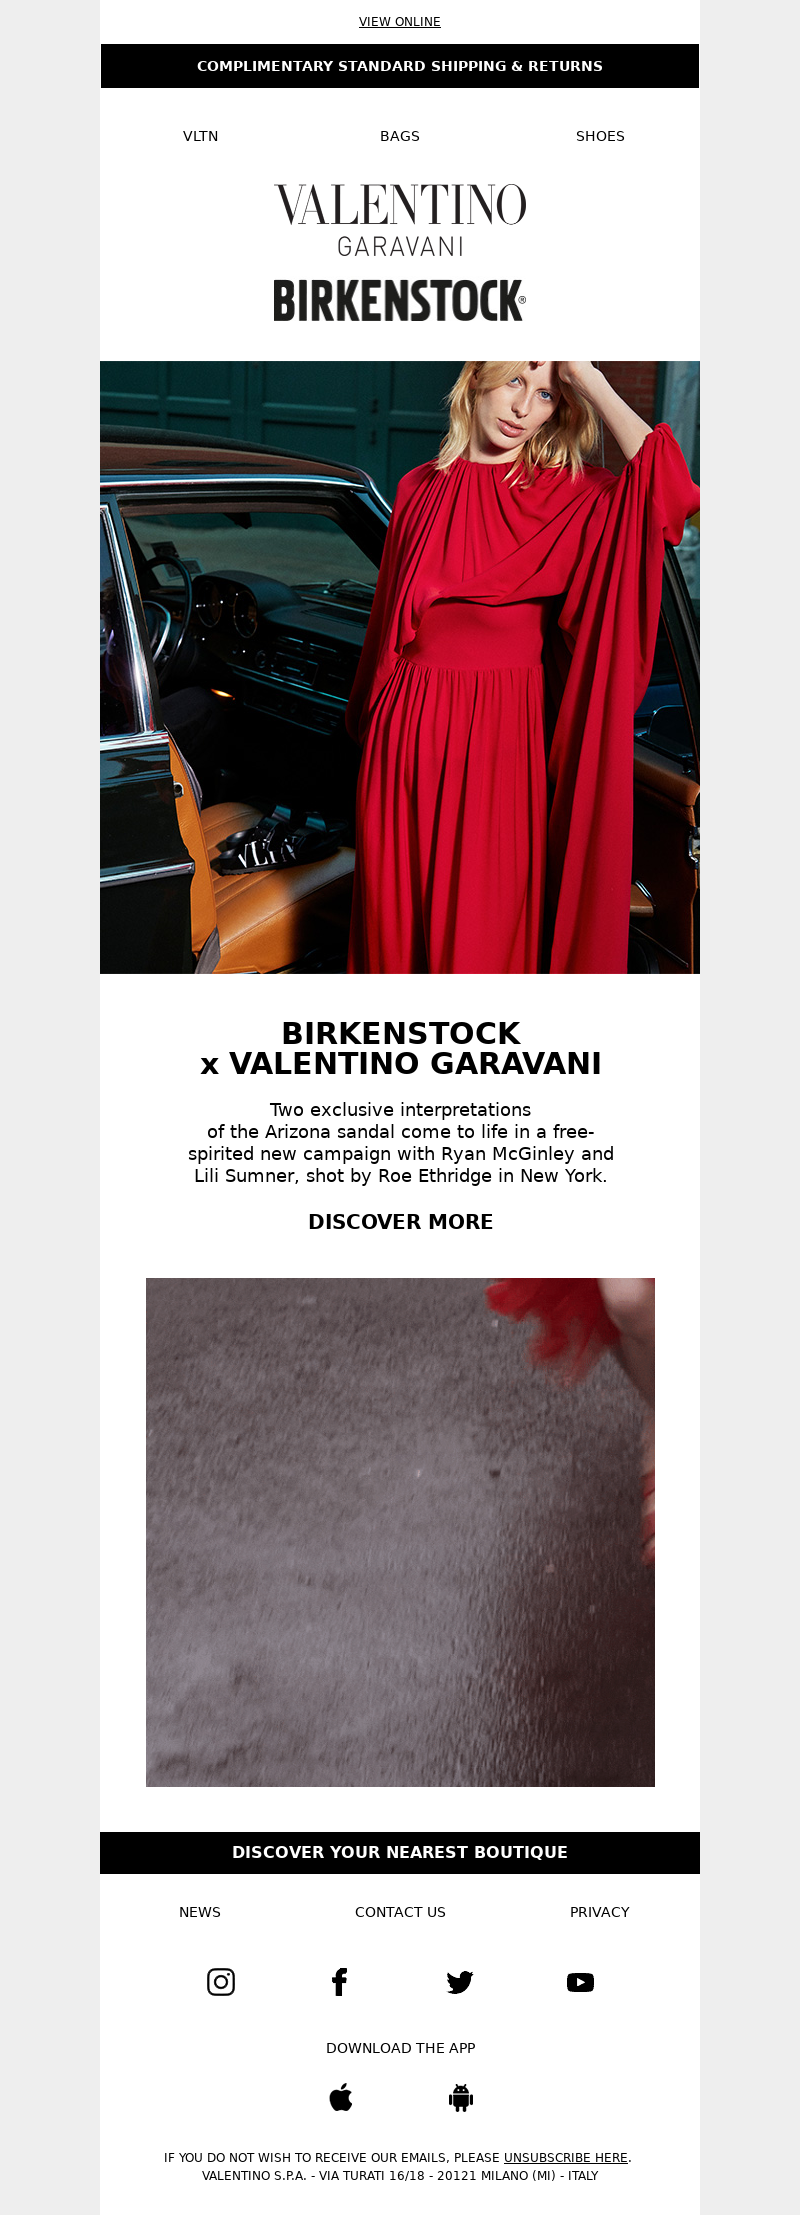 Valentino - VALENTINO IN COLLABORATION WITH BIRKENSTOCK